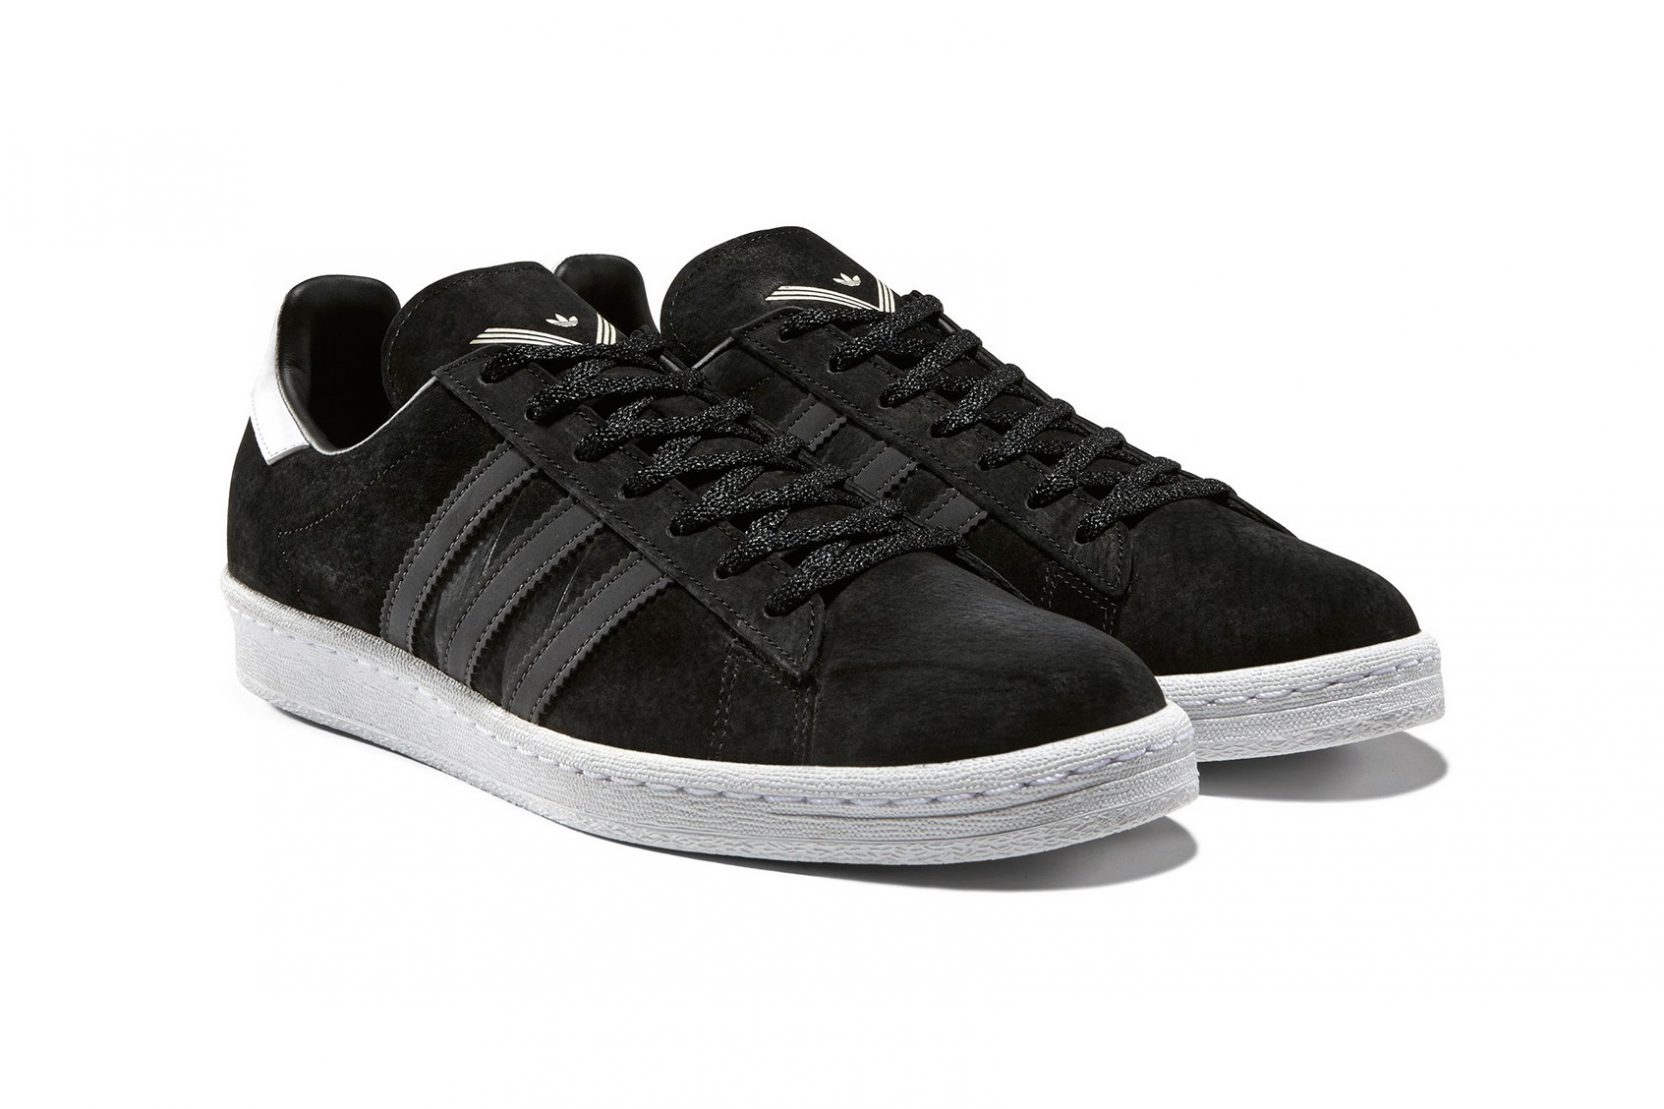 White Mountaineering x Adidas Spring Collection 4